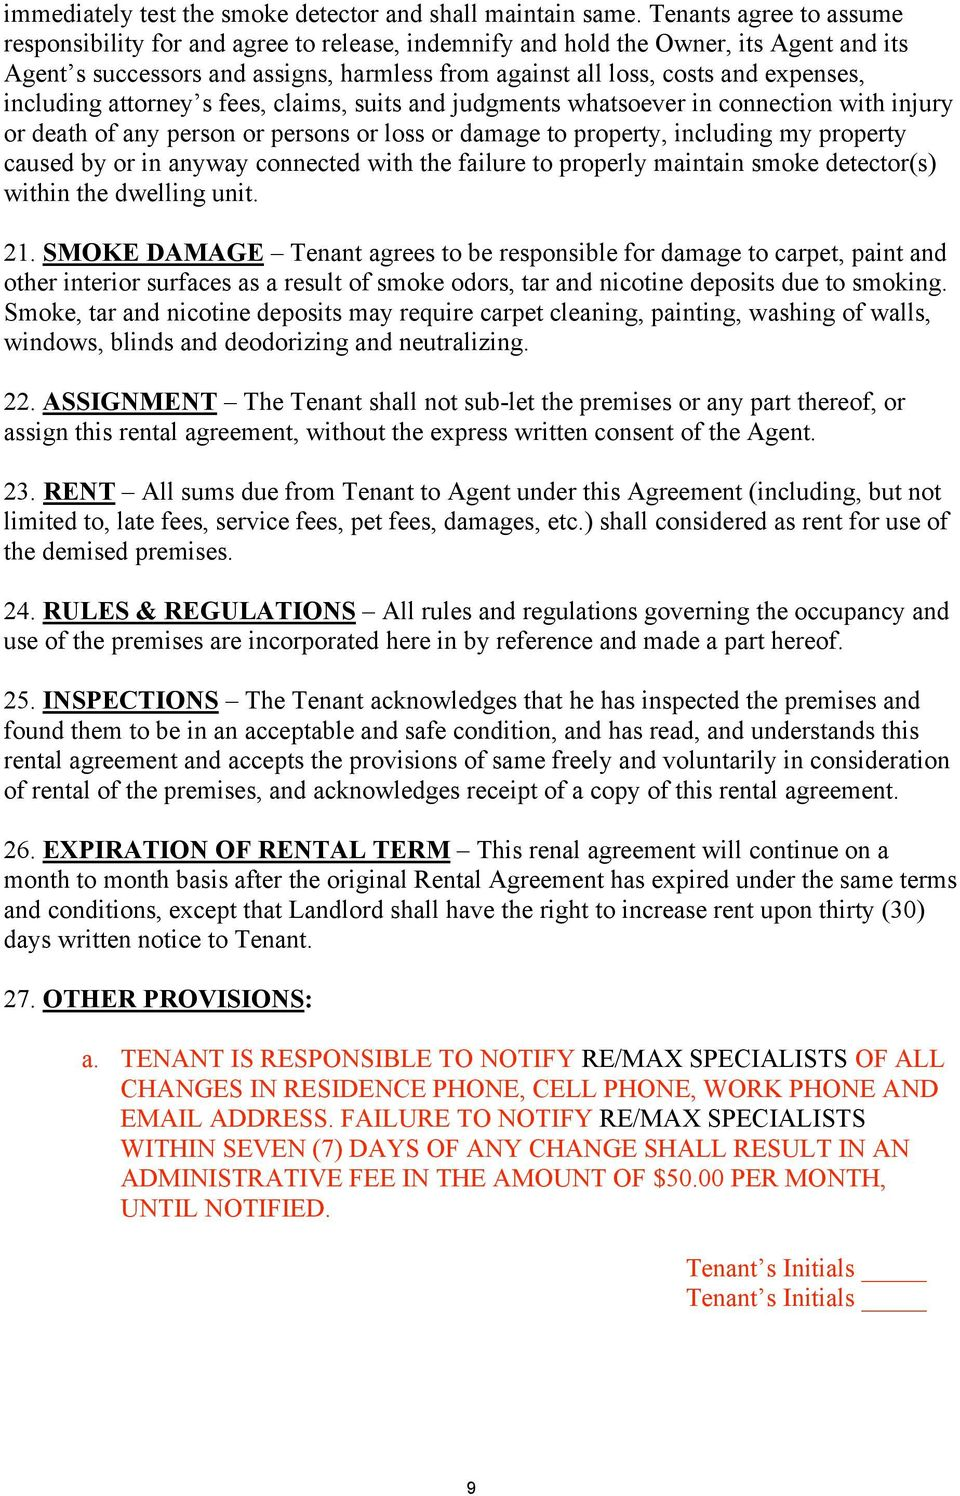 re max specialists property management lease agreement pdf including attorney s fees claims suits and judgments whatsoever in connection injury or